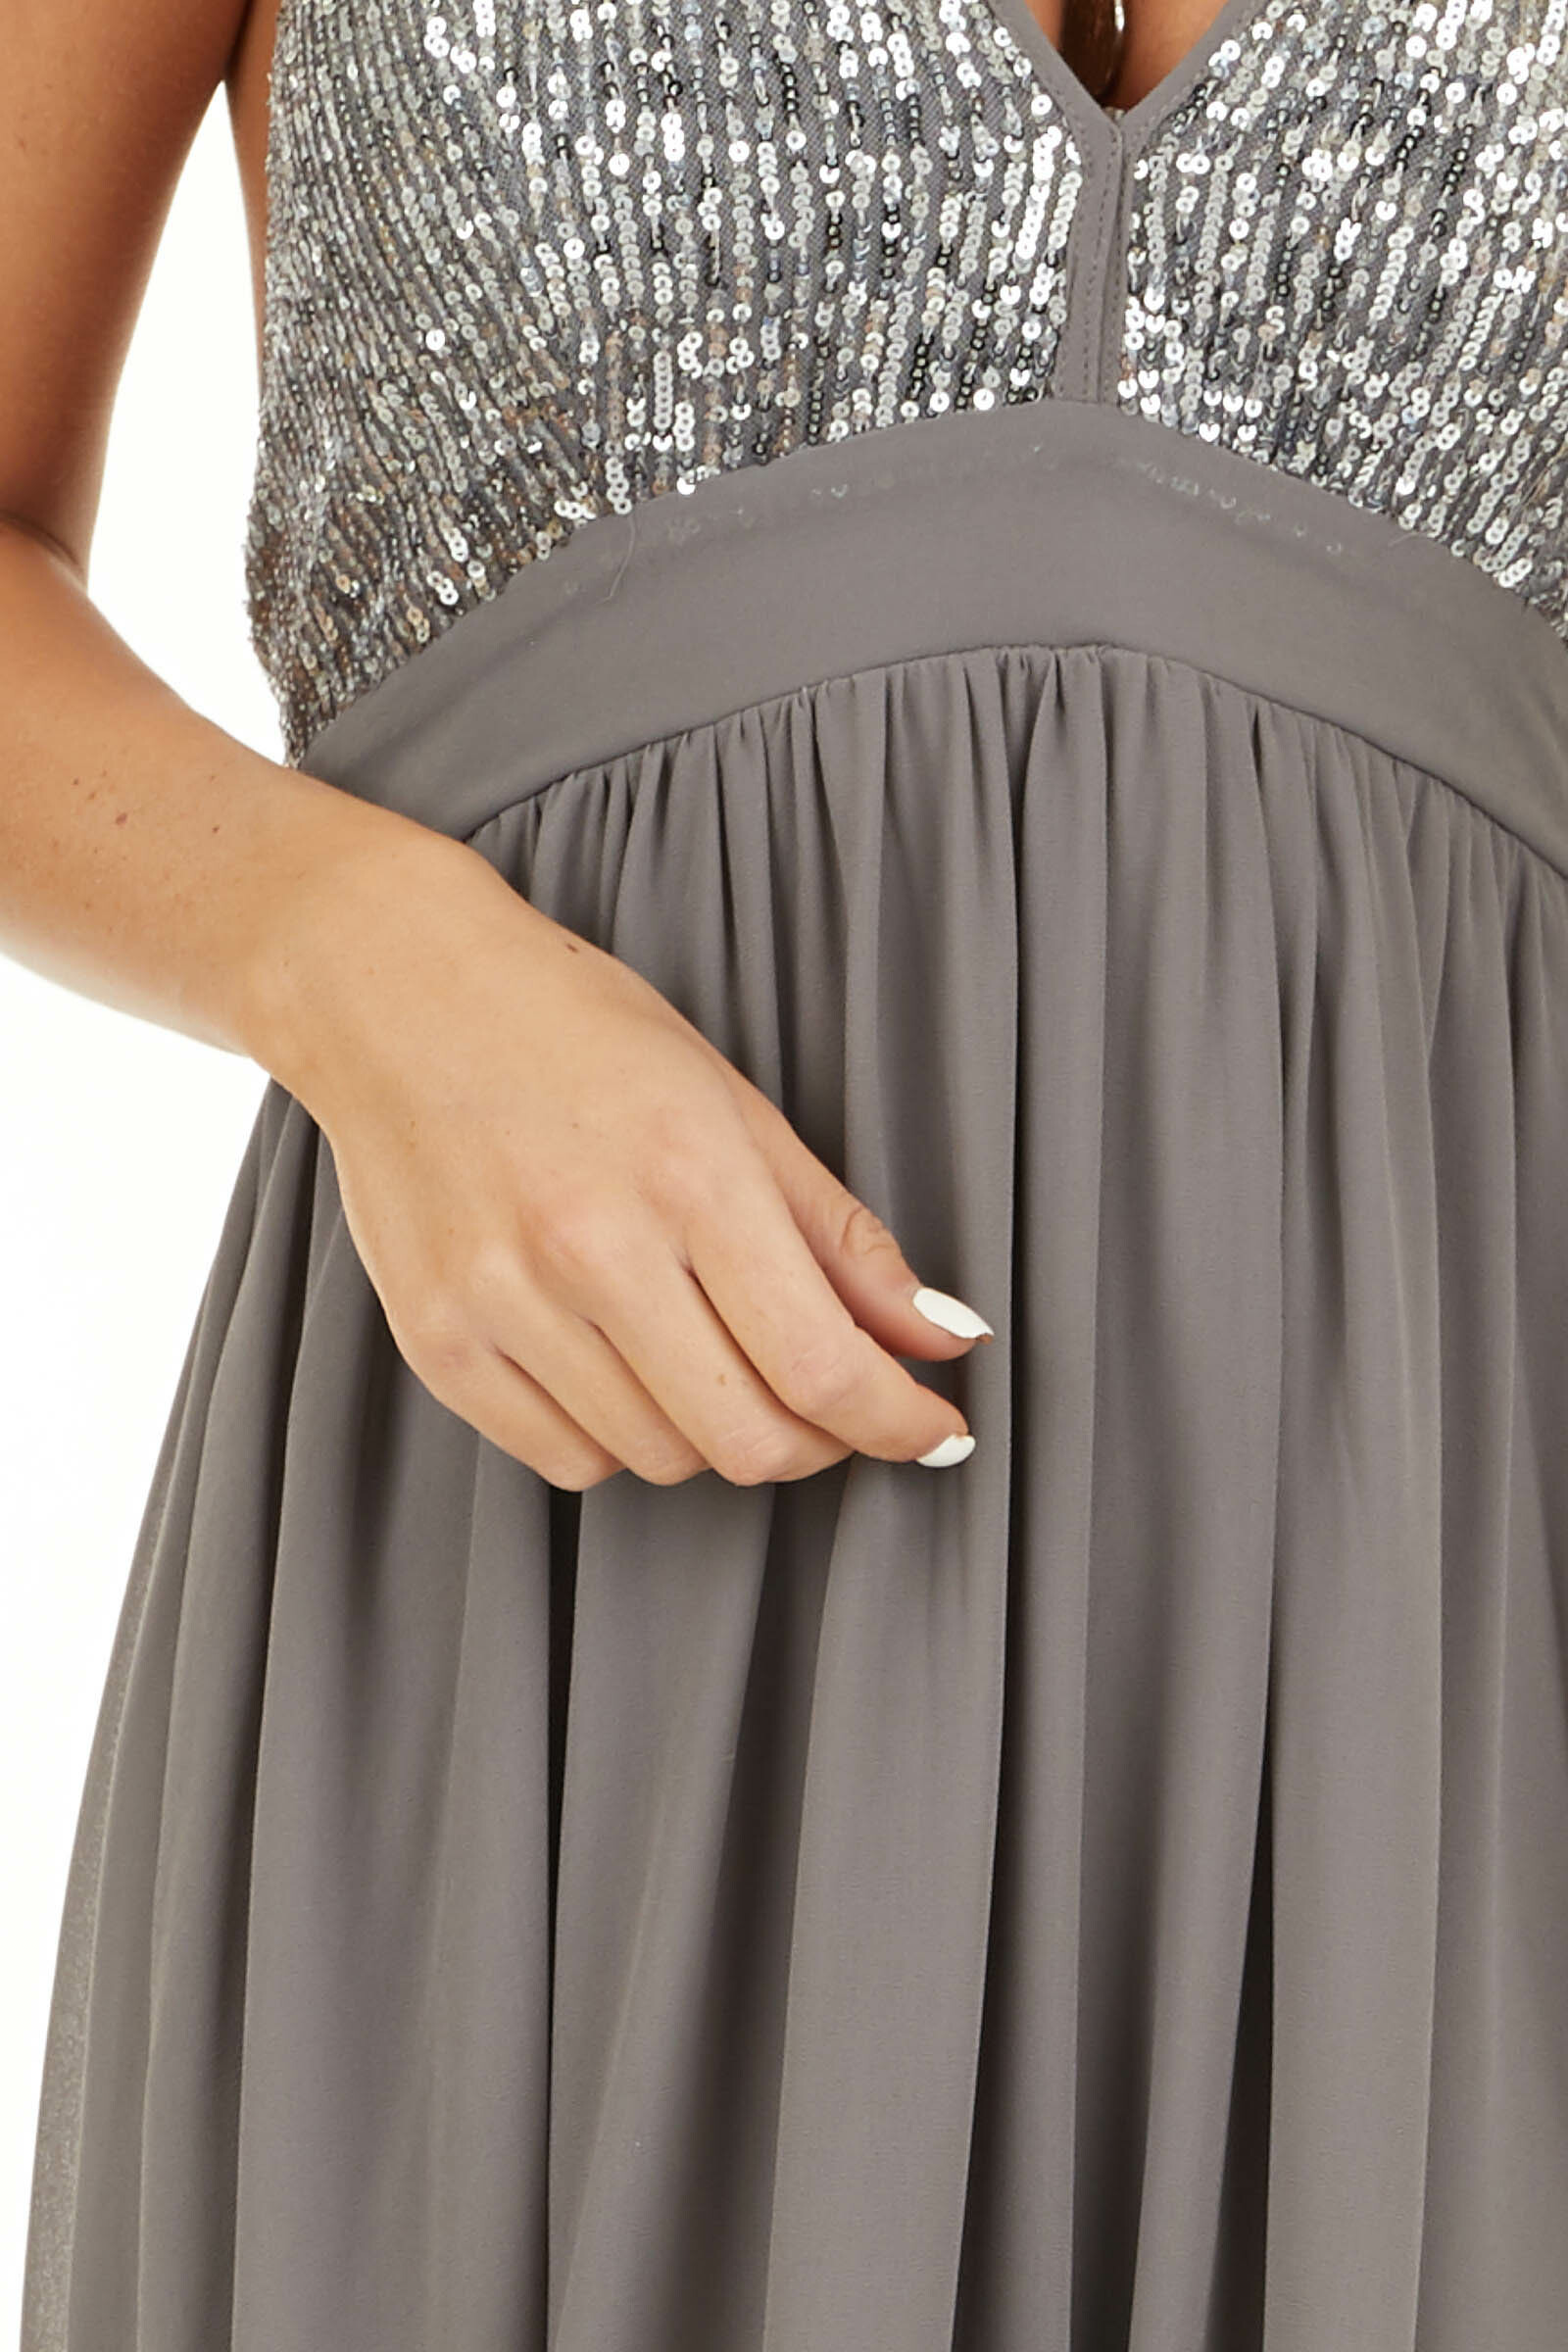 Stone Grey Sleeveless Halter Maxi Dress with Sequined Bodice detail